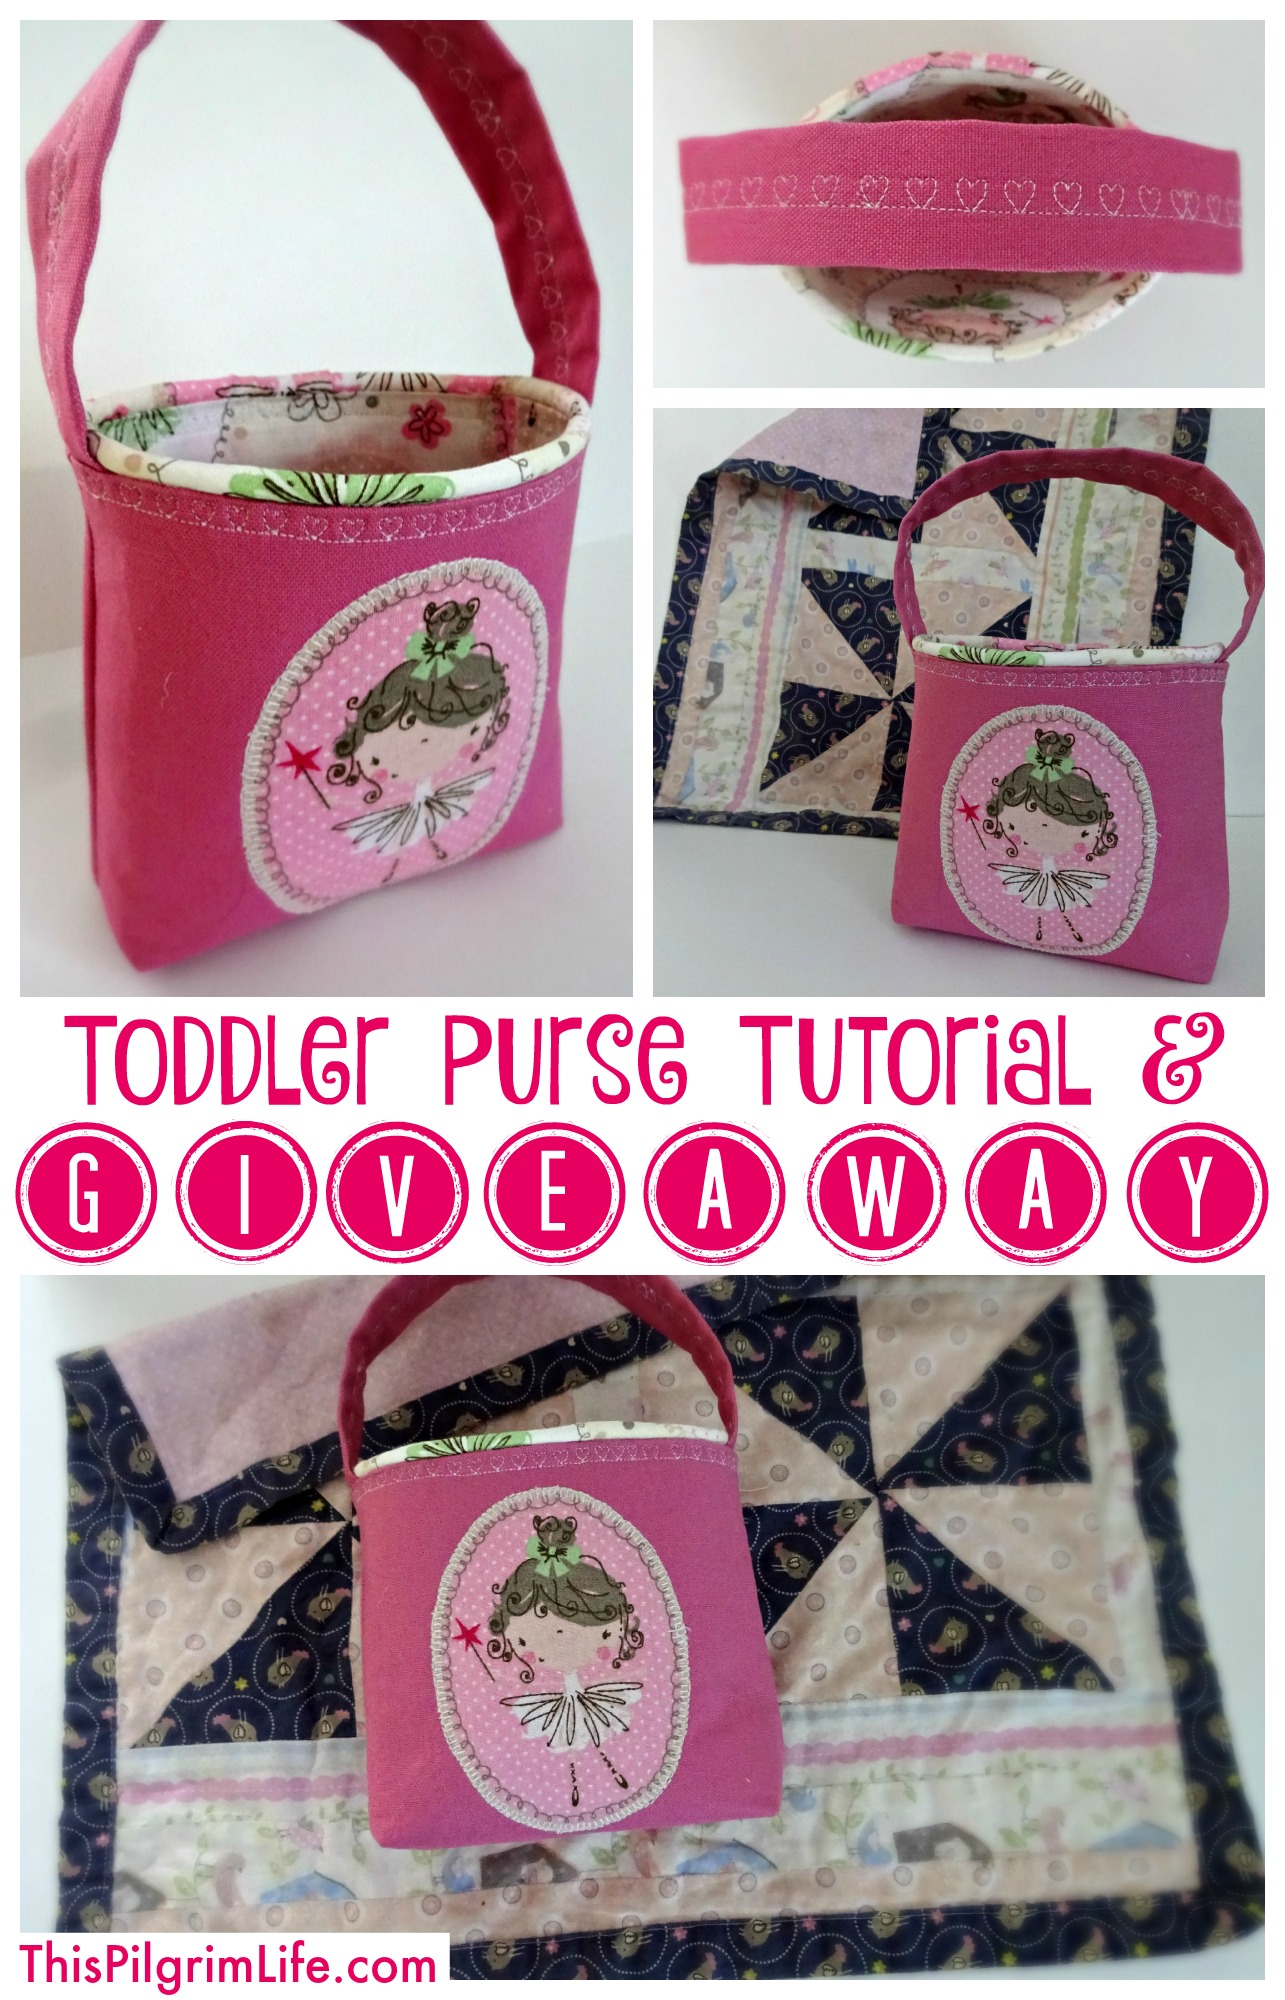 An easy step-by-step tutorial to make a simple purse for a toddler. AND a GIVEAWAY to win a toddler purse and quilted doll blanket!